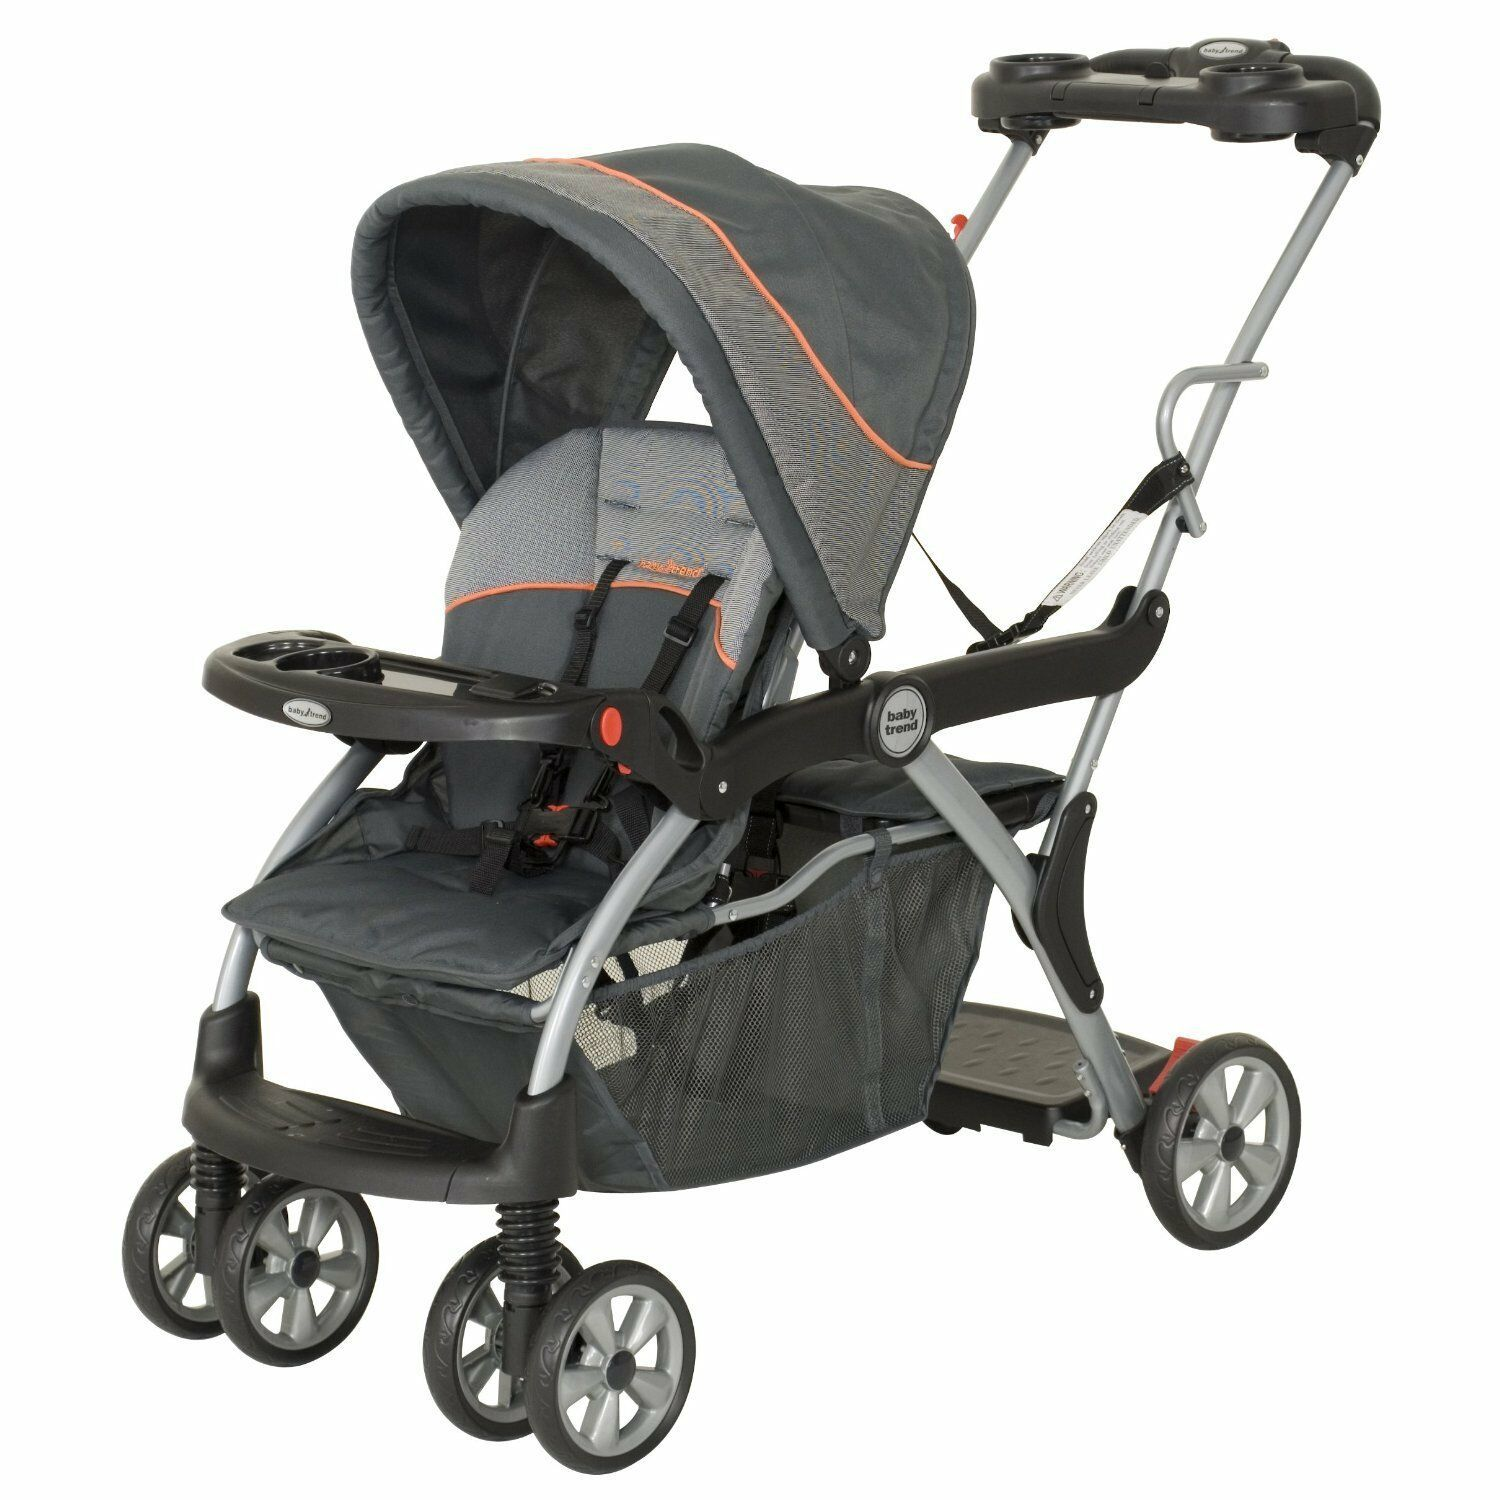 Baby Trend Sit N Stand Deluxe Double Stroller Vanguard Best Affordable Price Stroller Ba In 2020 Baby Trend Double Stroller Baby Strollers Baby Stroller Reviews